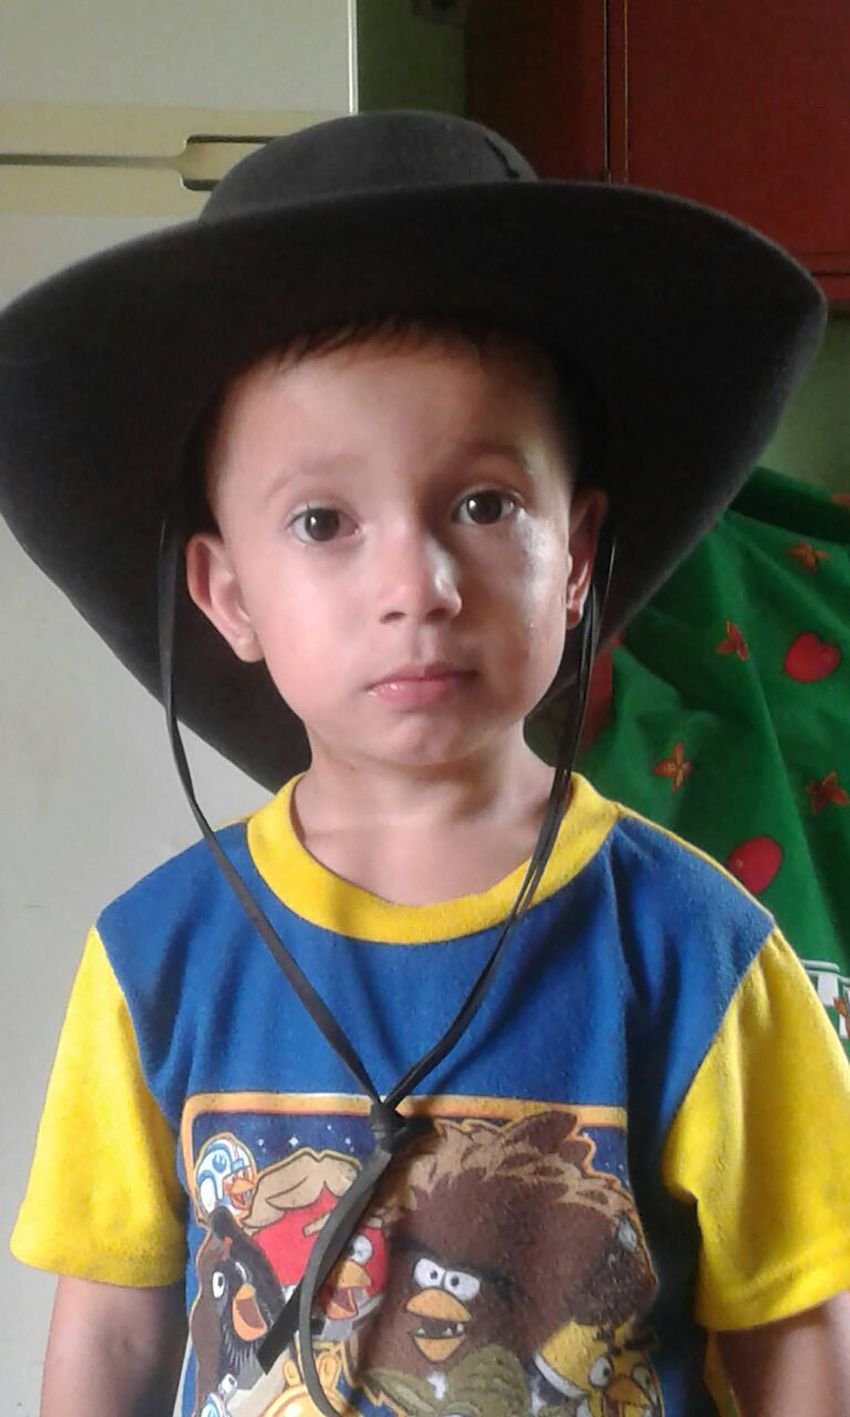 Brayan, now four, was separated from his father in South Texas. He's currently in a temporary foster care agency in New Yo...